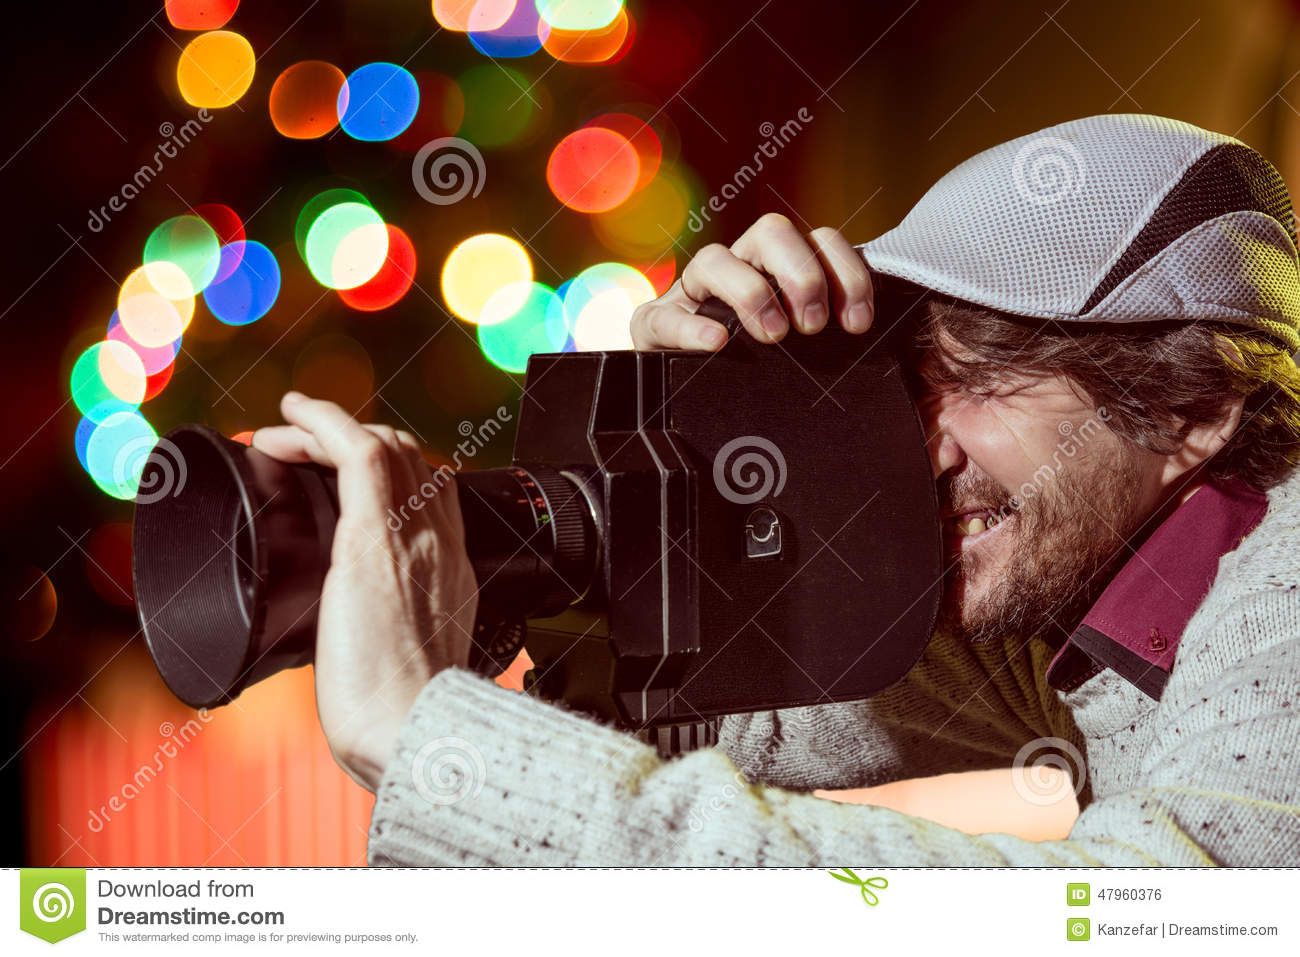 A Man Wearing A Cap With An Old Movie Camera Stock Photo - Image of ...